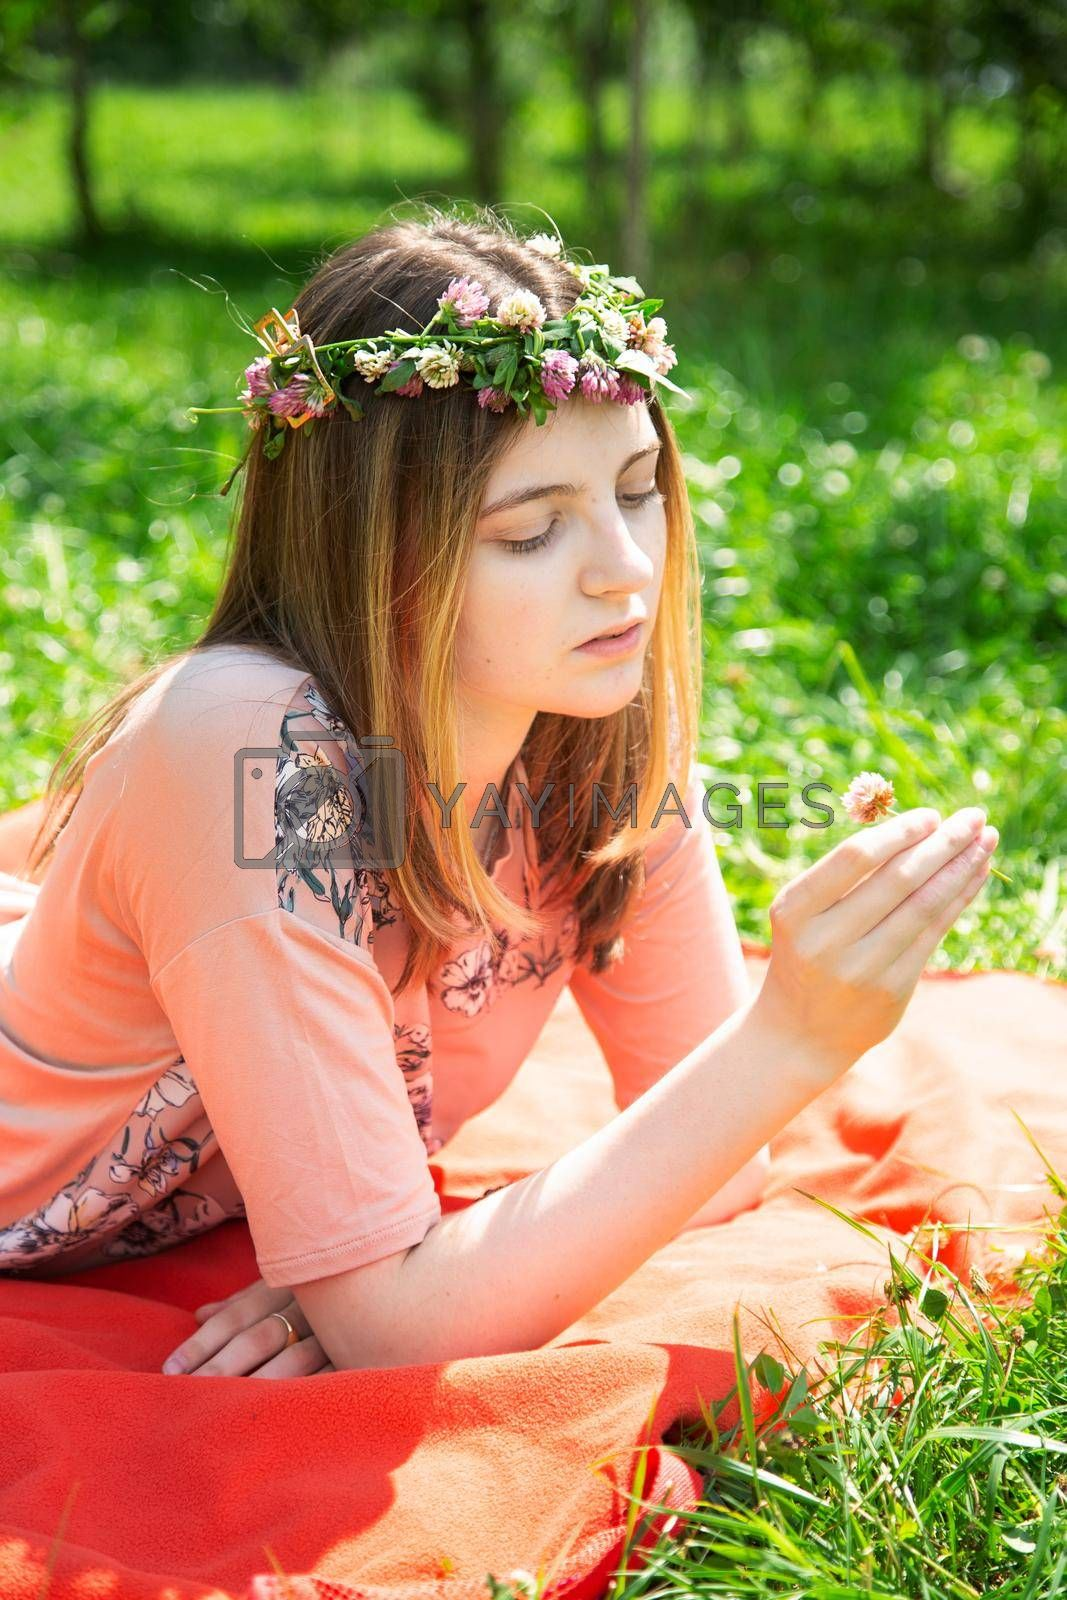 A young girl examines a flower lying on the lawn in the park on a summer day. by galinasharapova